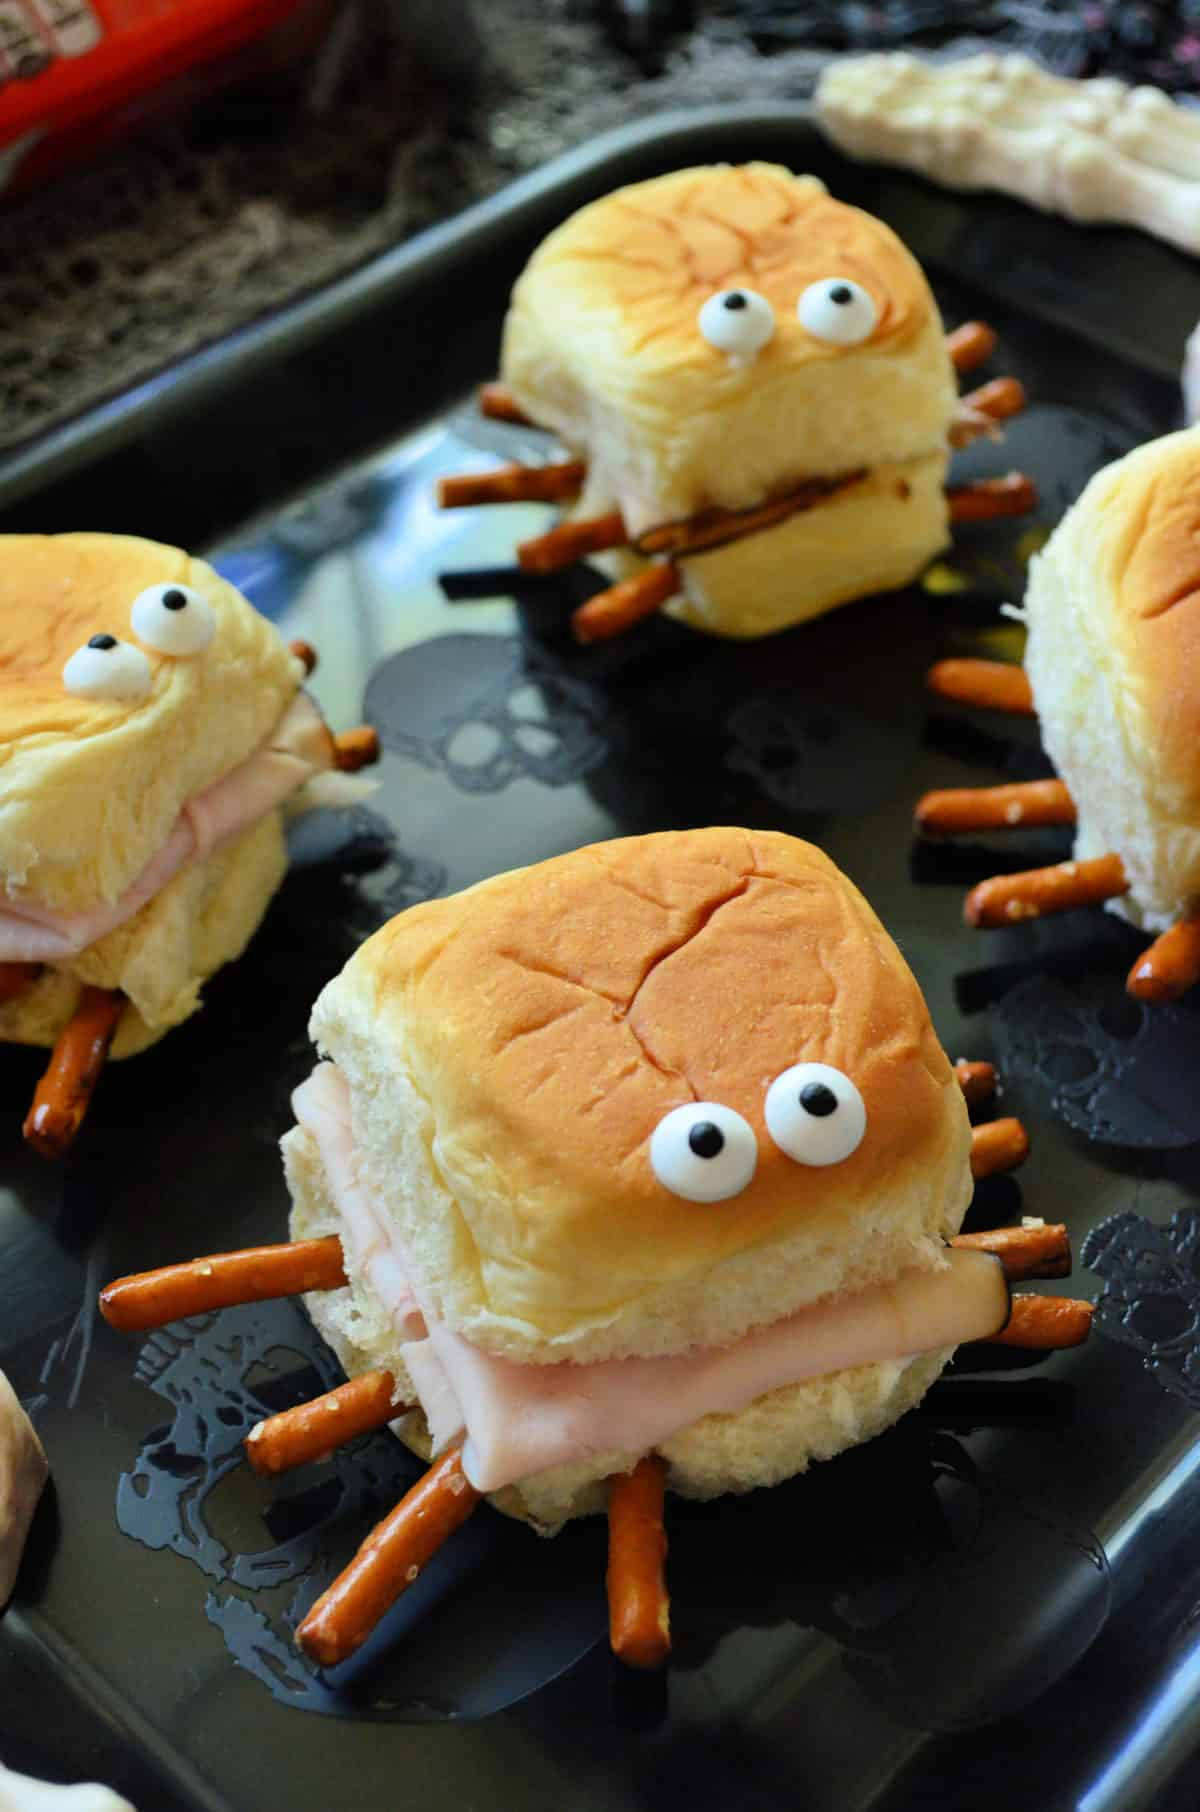 closeup of small rolls with turkey, pretzels sticking out like spider legs, and candy eyes on top.